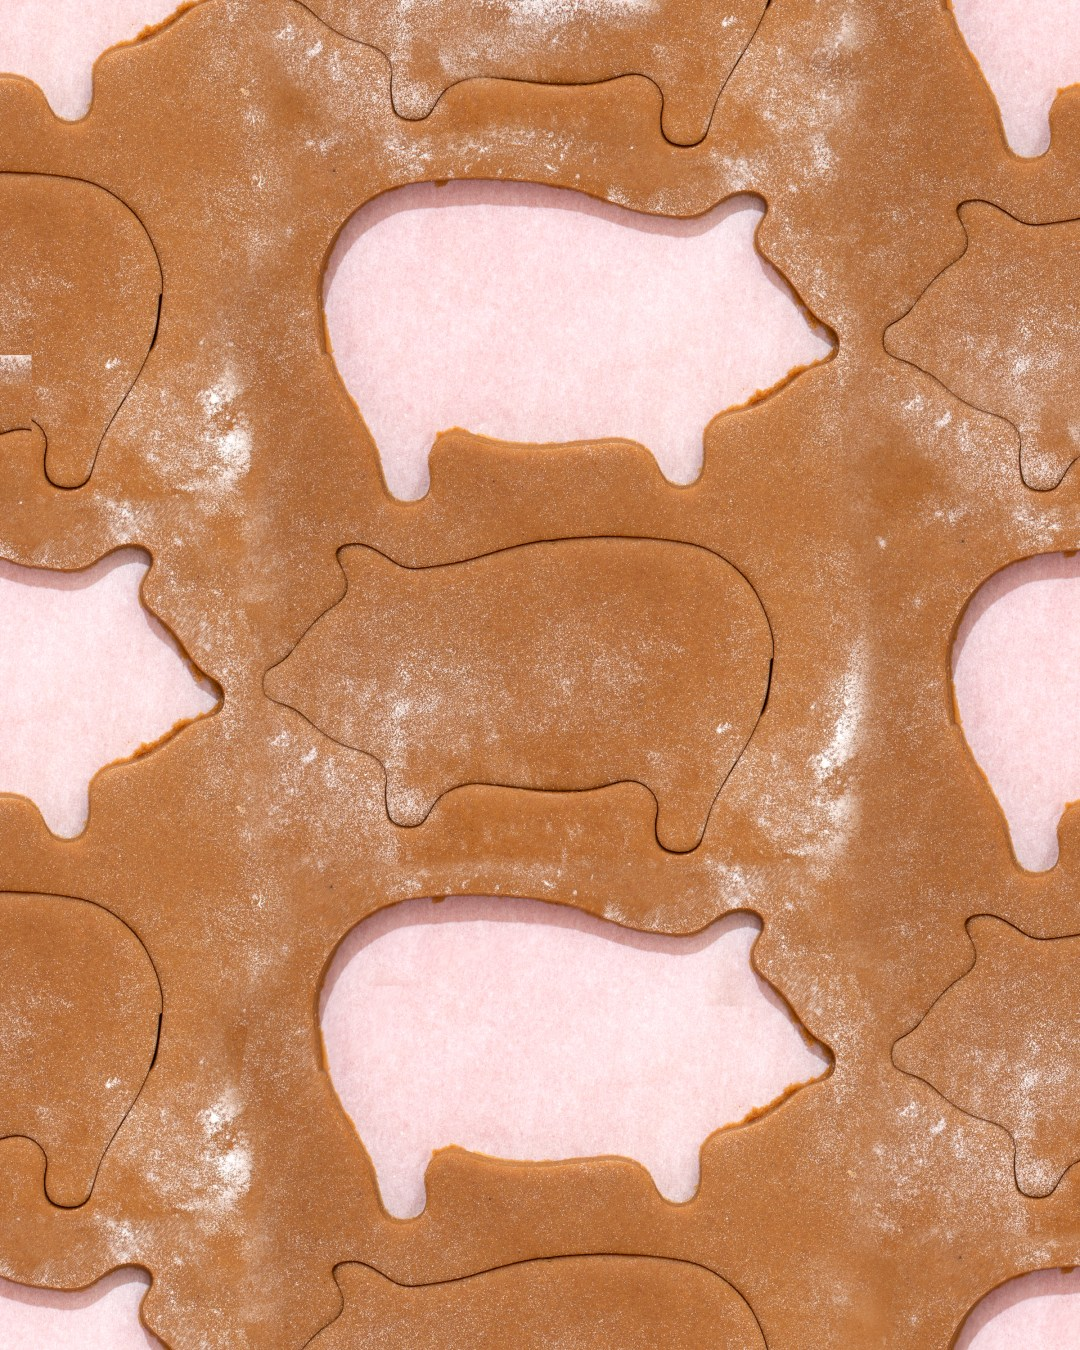 Marranitos Puerquitos Soft Mexican Gingerbread Pig Shaped Cookies